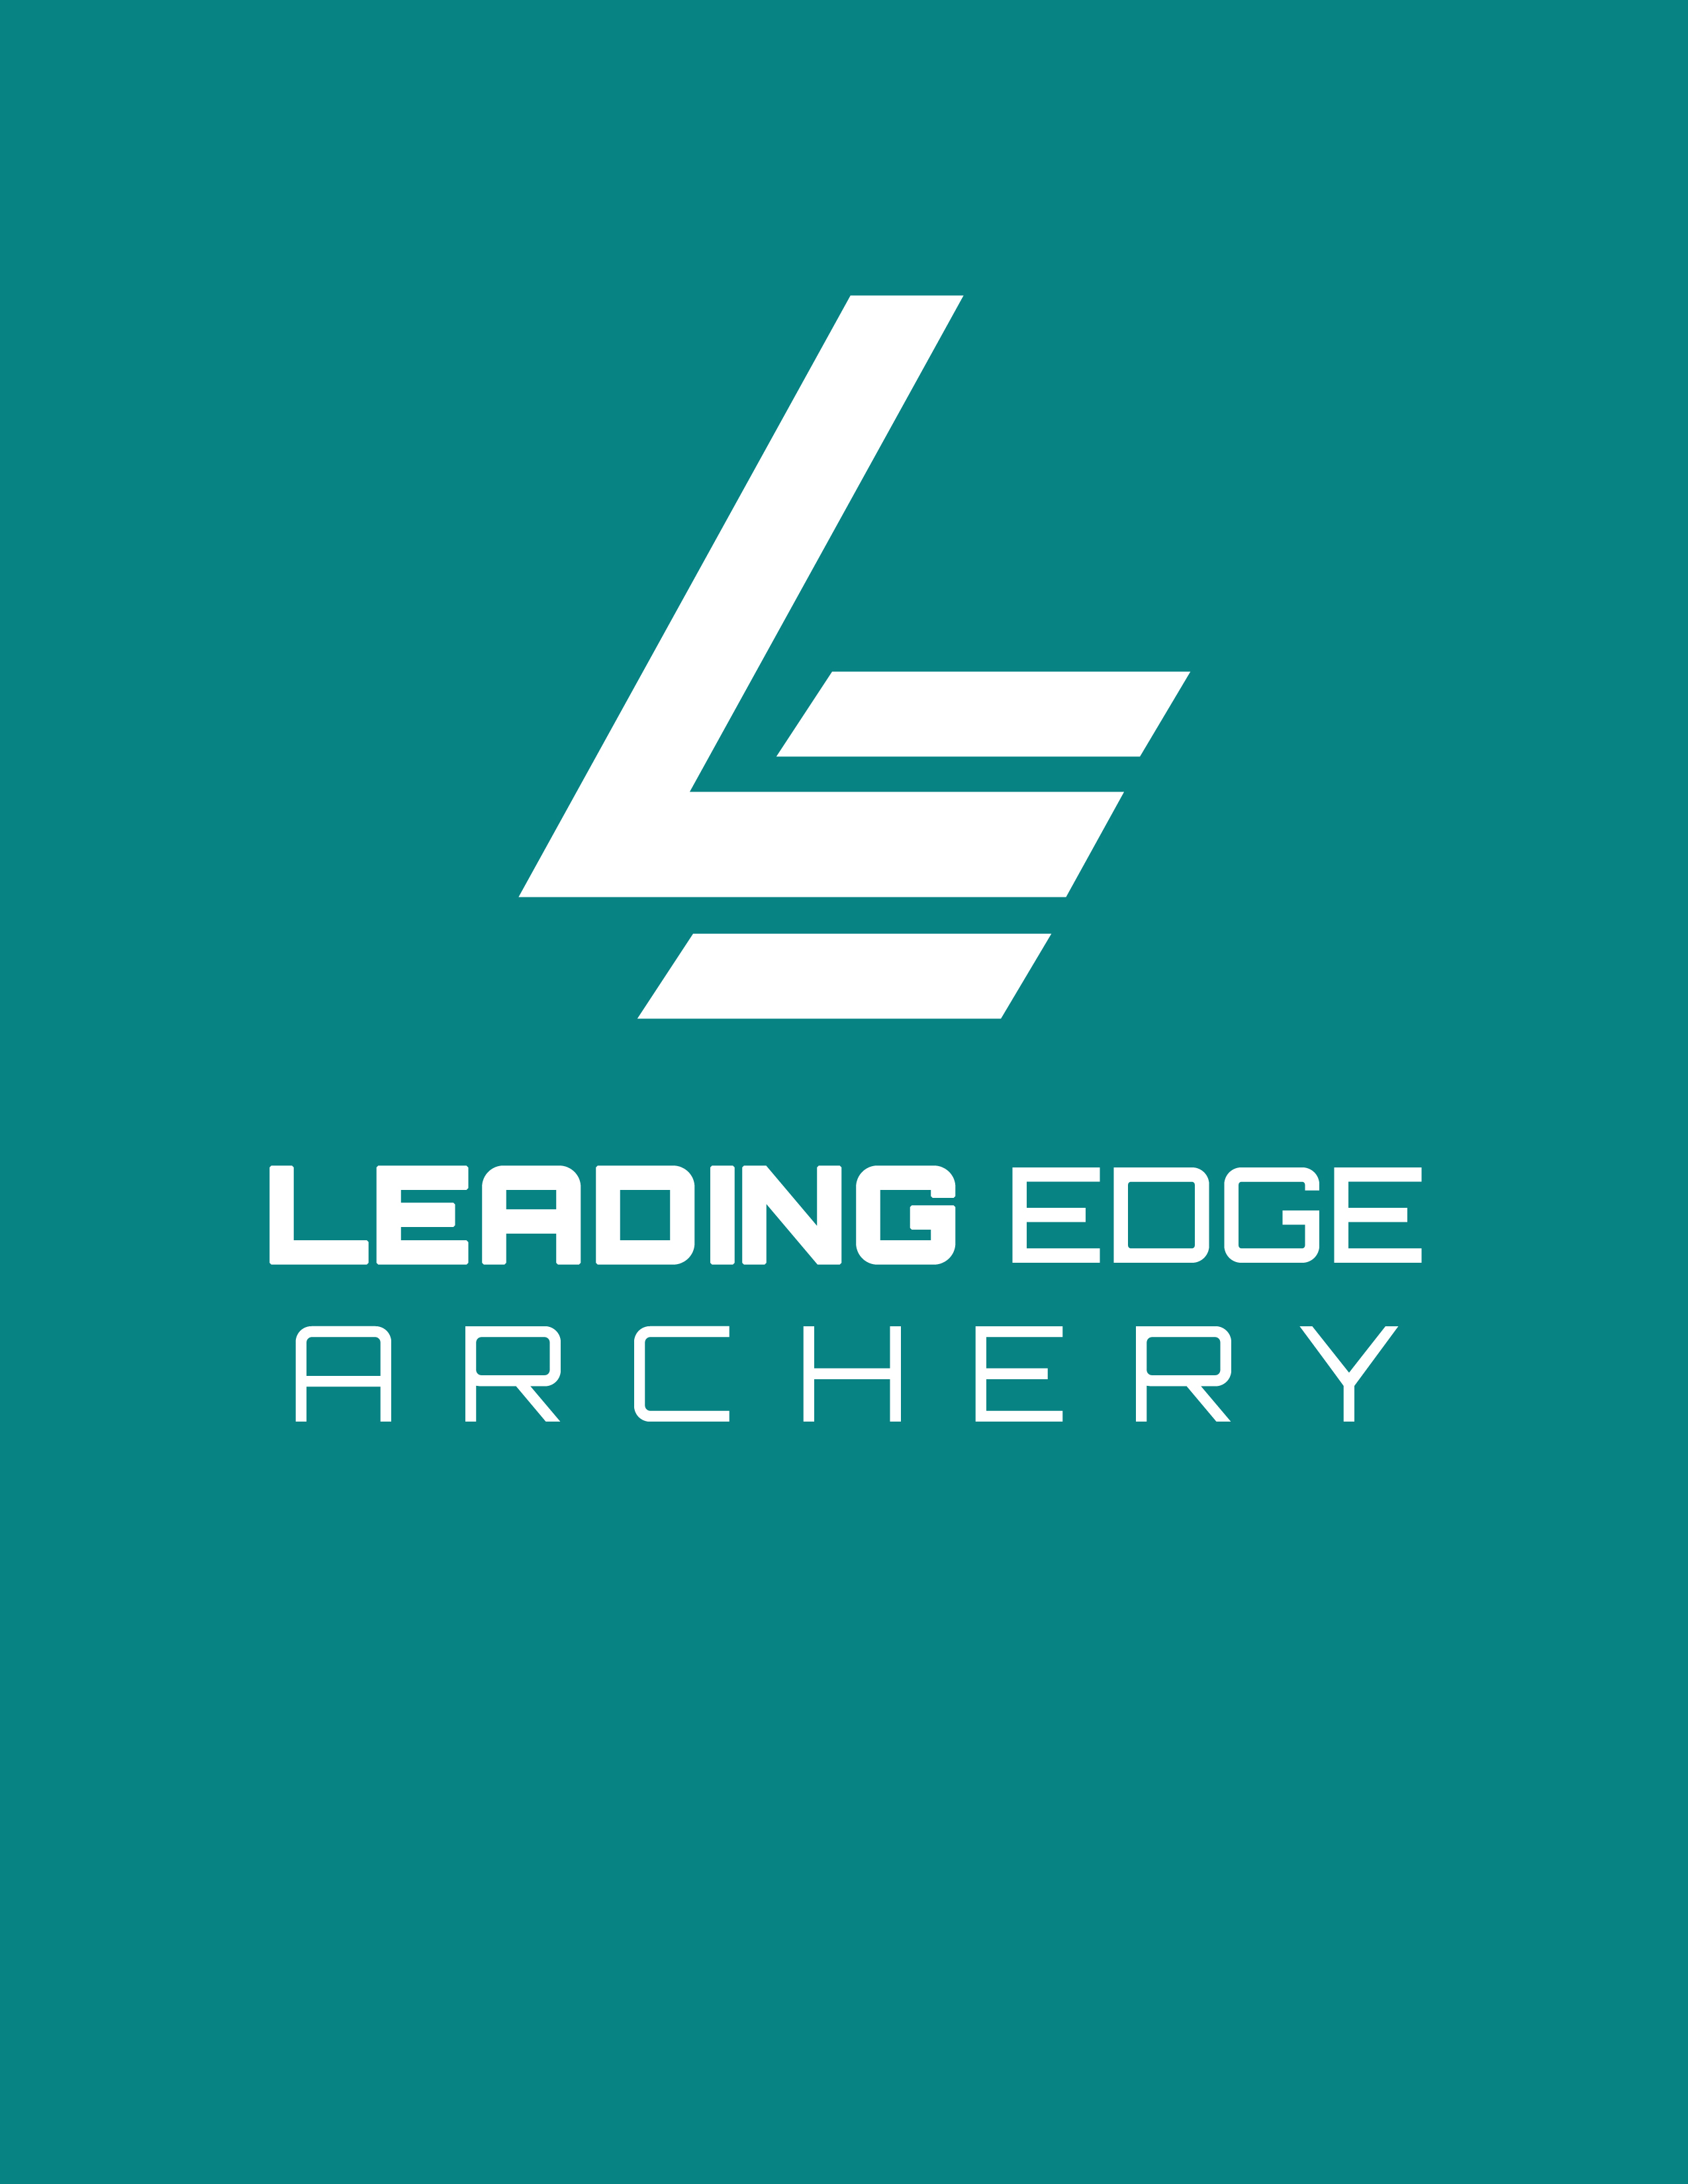 Leading Edge Archery - logo